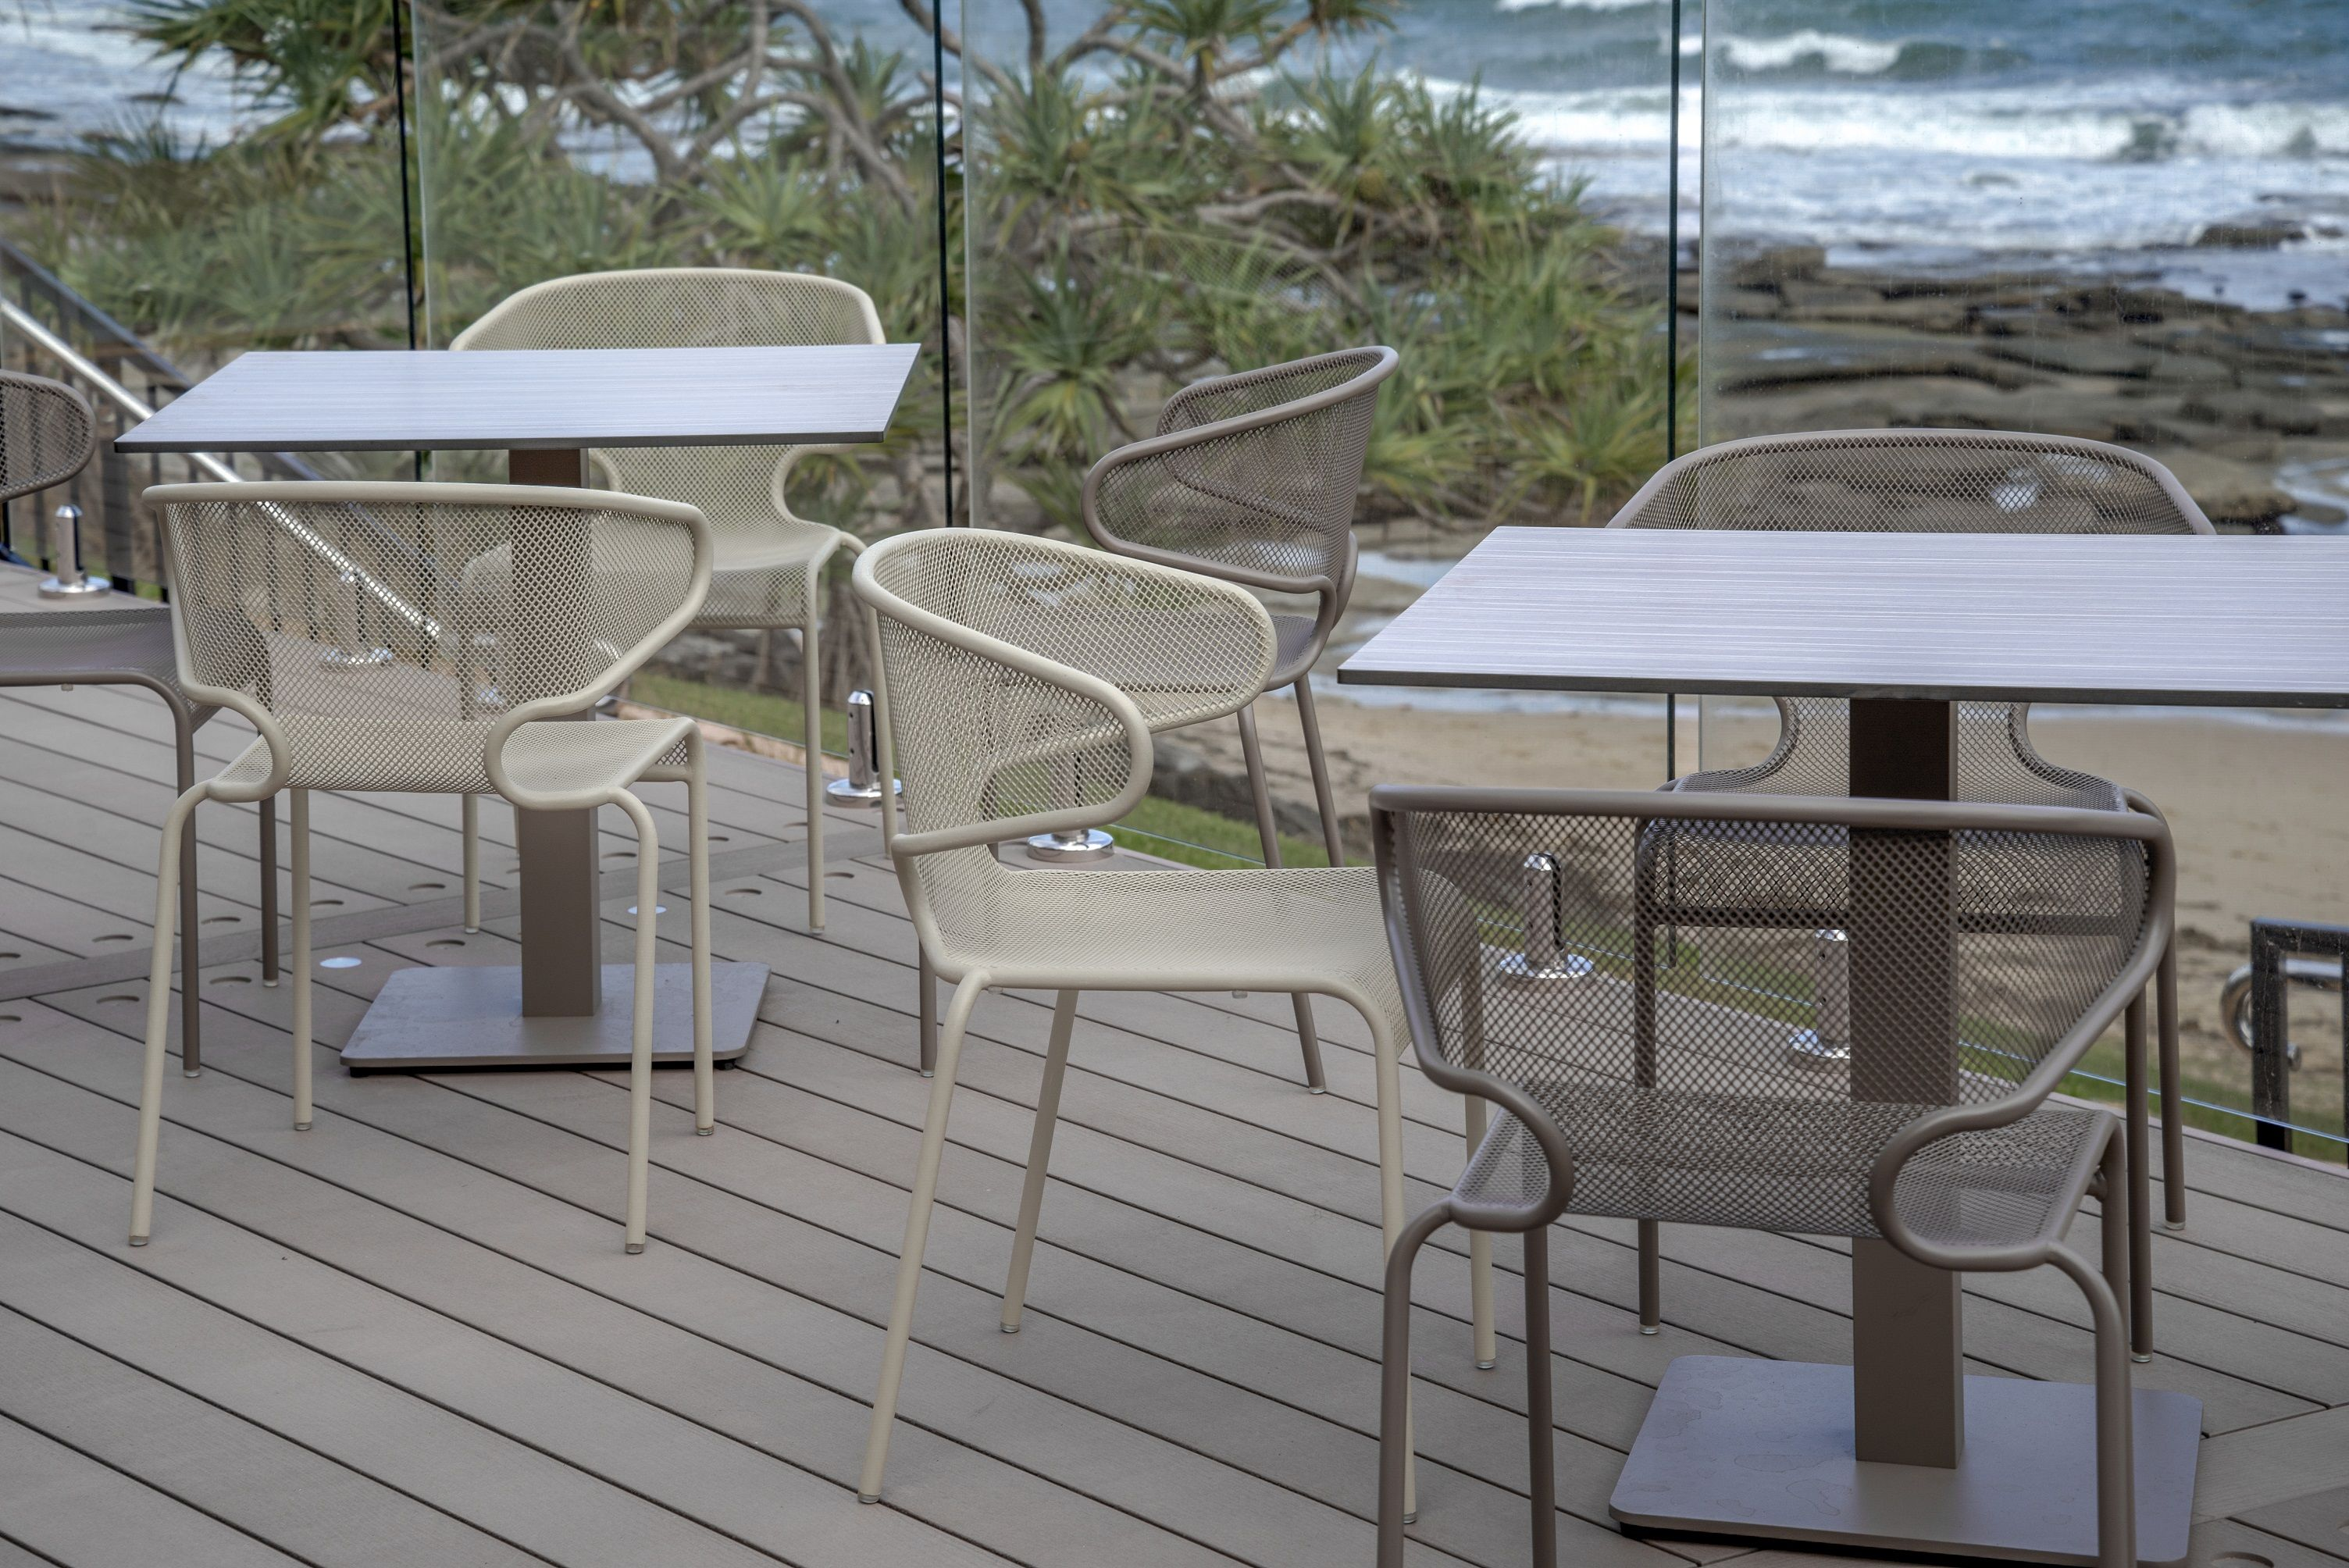 #BFM #seating Maze Mesh Furniture On This Oceanside Restaurant Patio Deck  #wherespacedefinesdesign